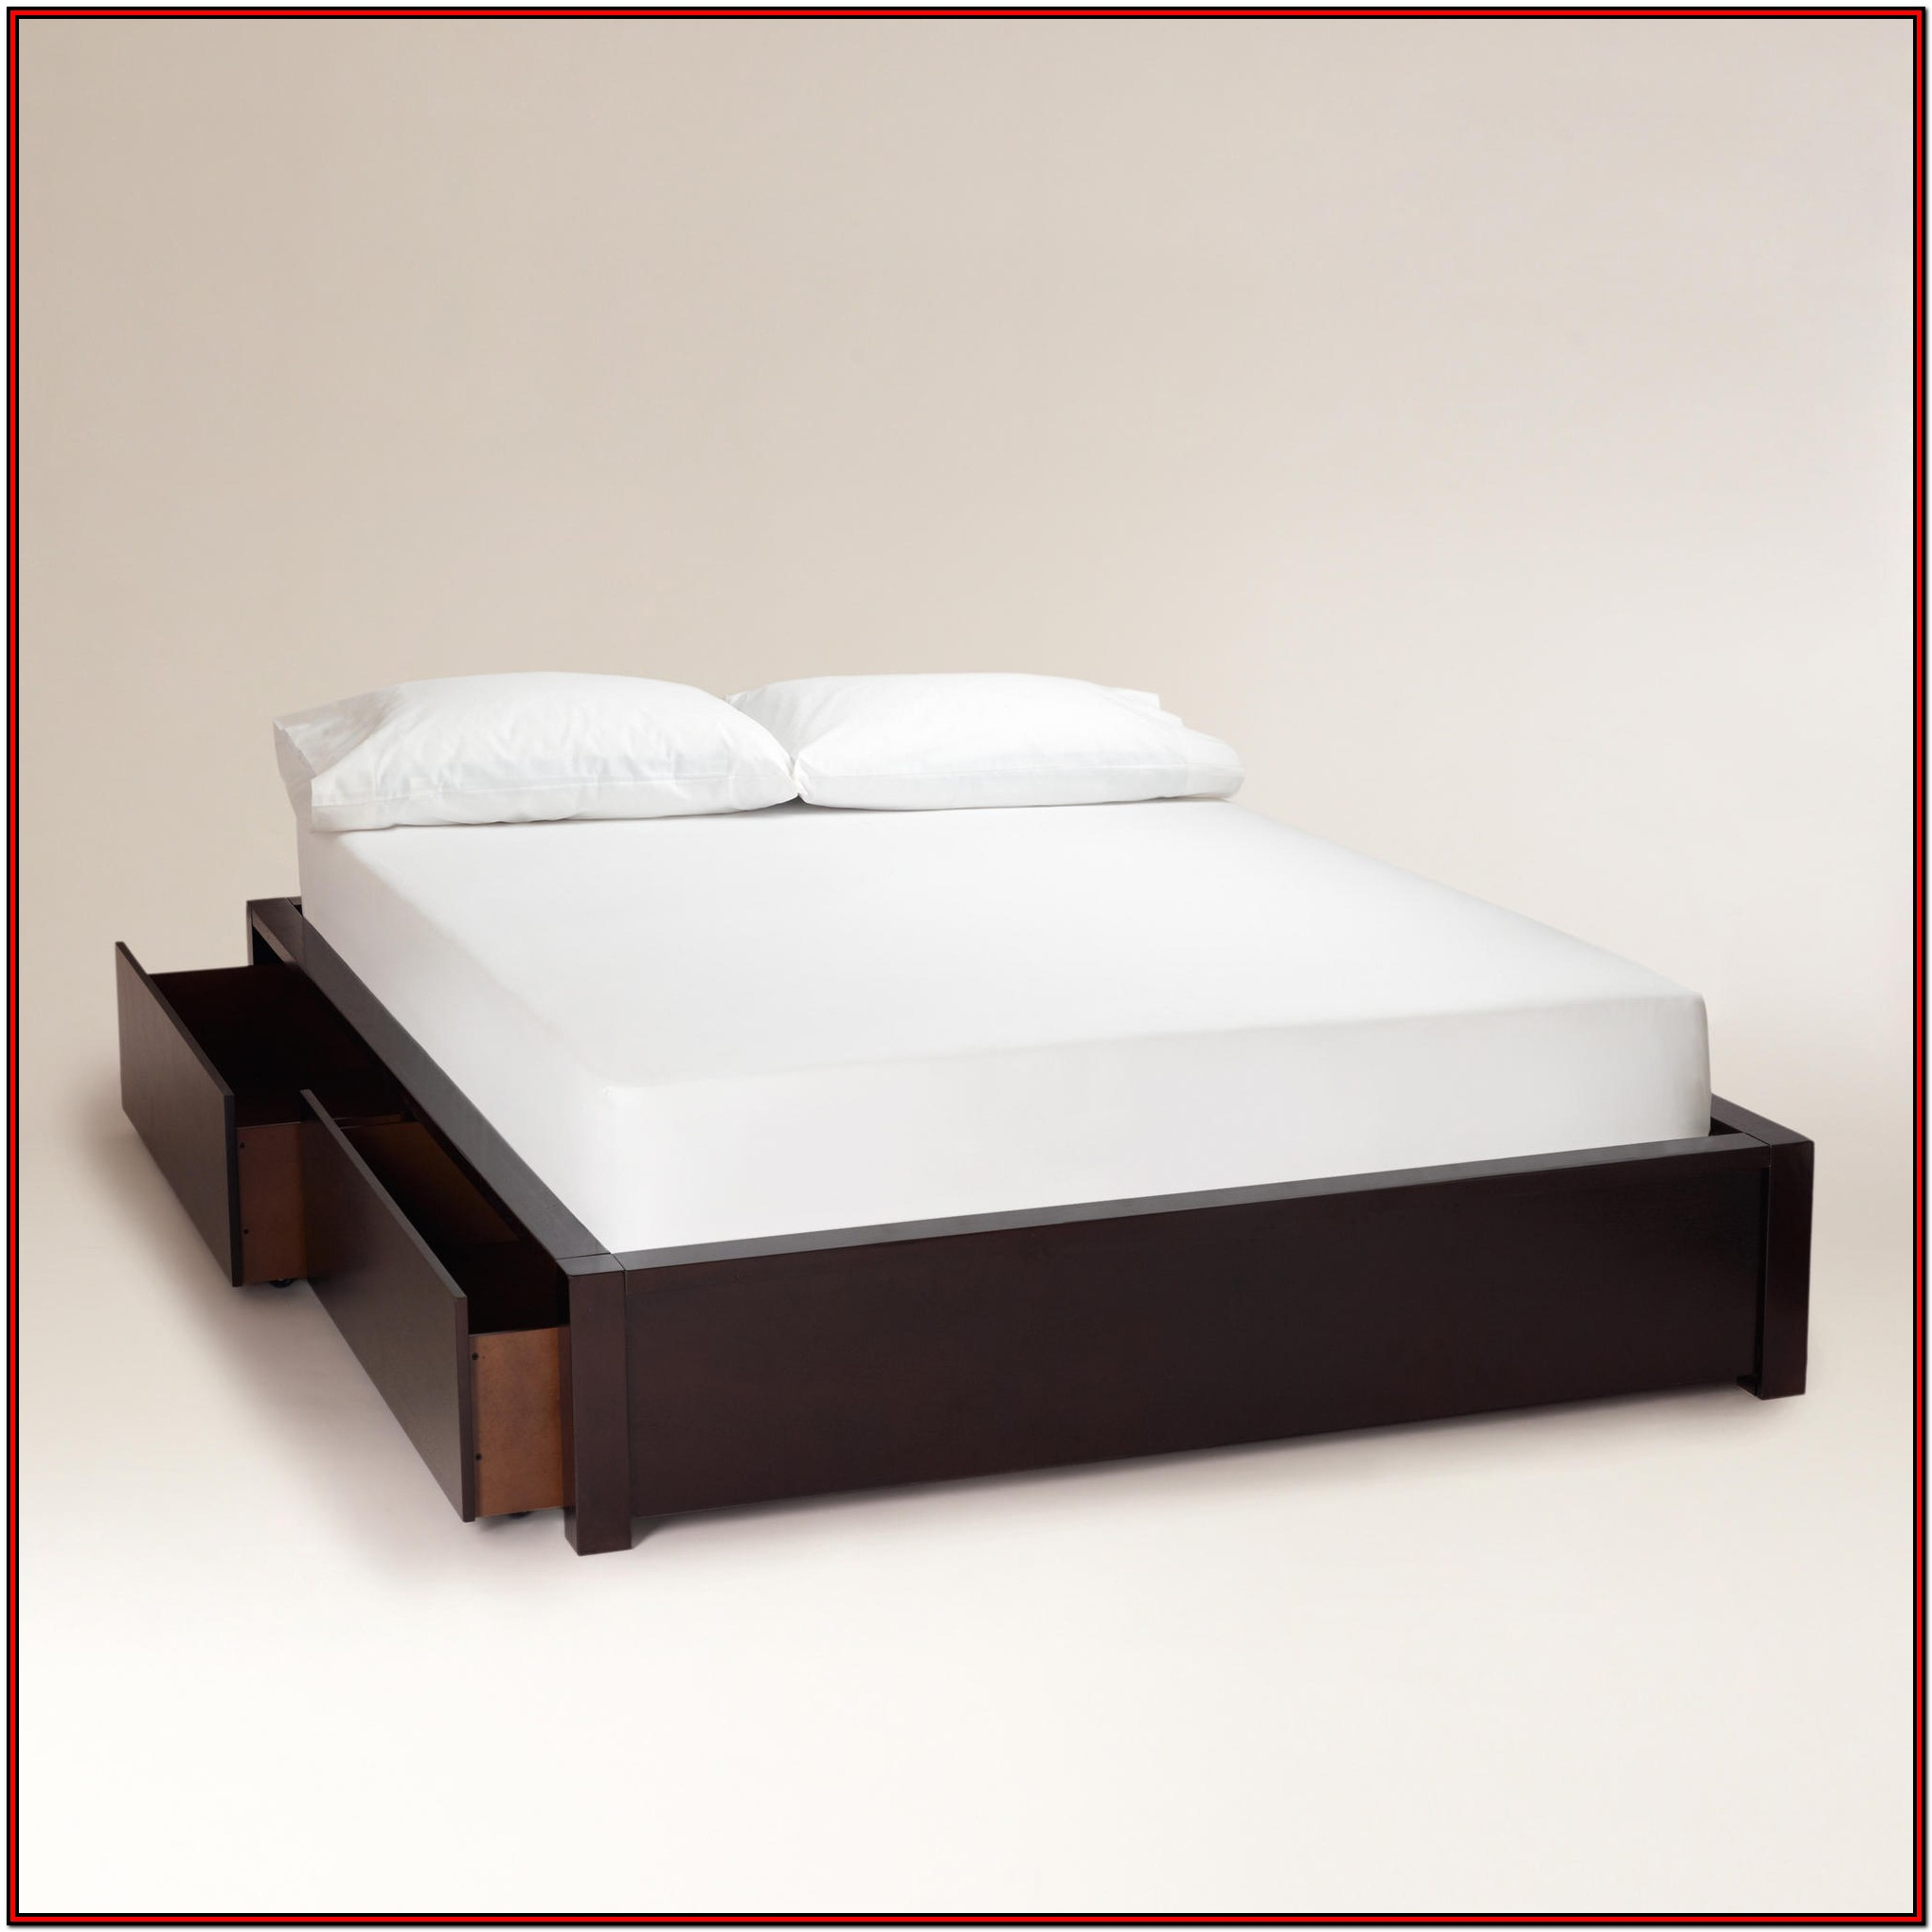 King Platform Bed Frame With Storage And Headboard